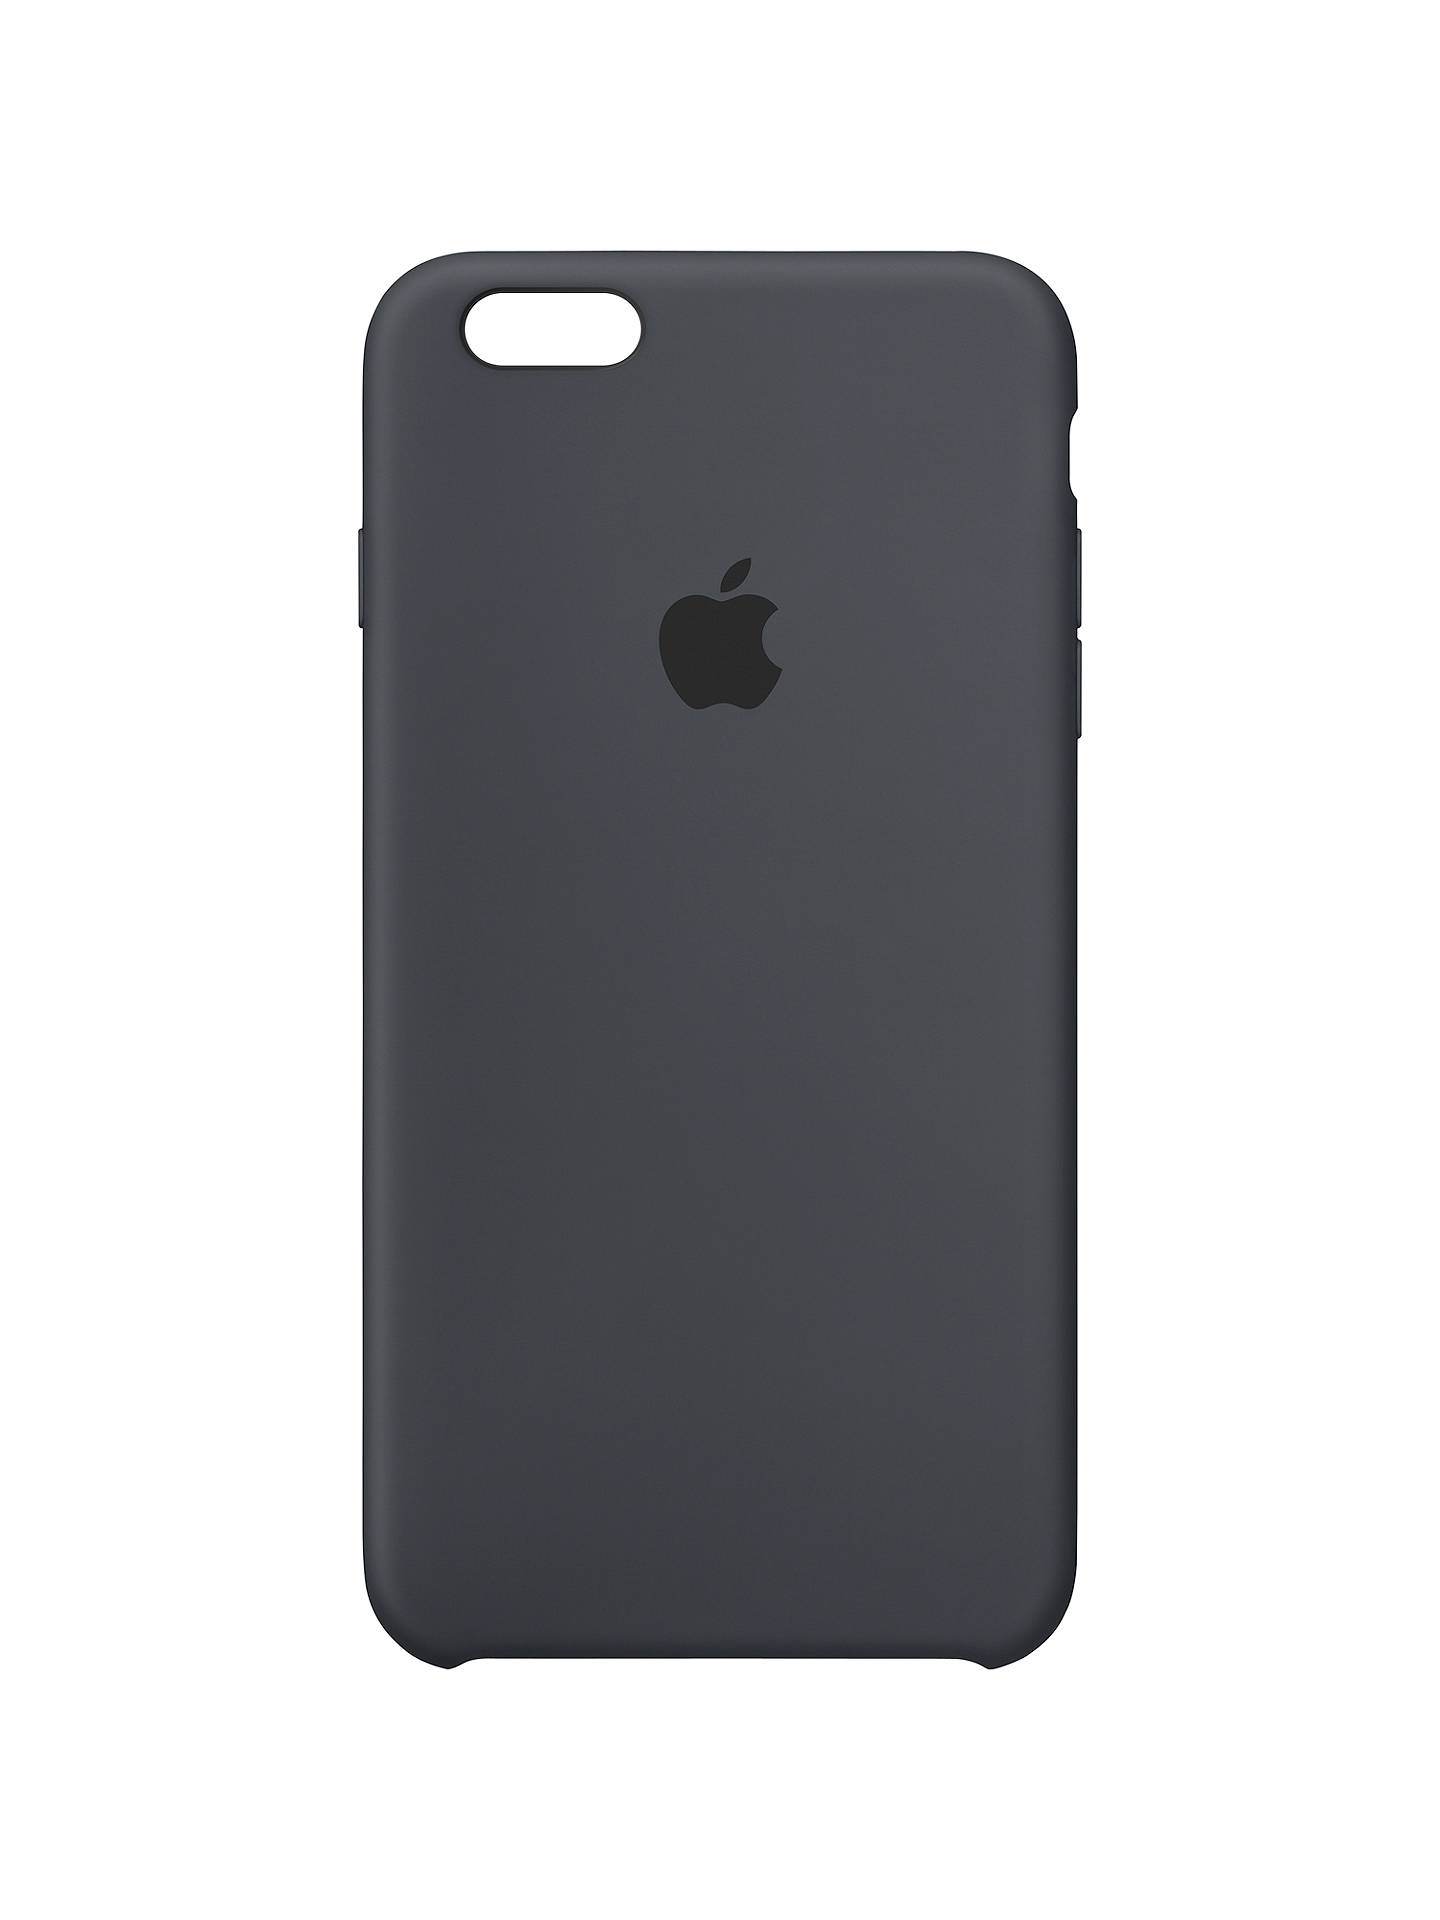 buy online 040c0 773b7 Apple Silicone Case for iPhone 6s Plus, Charcoal Grey